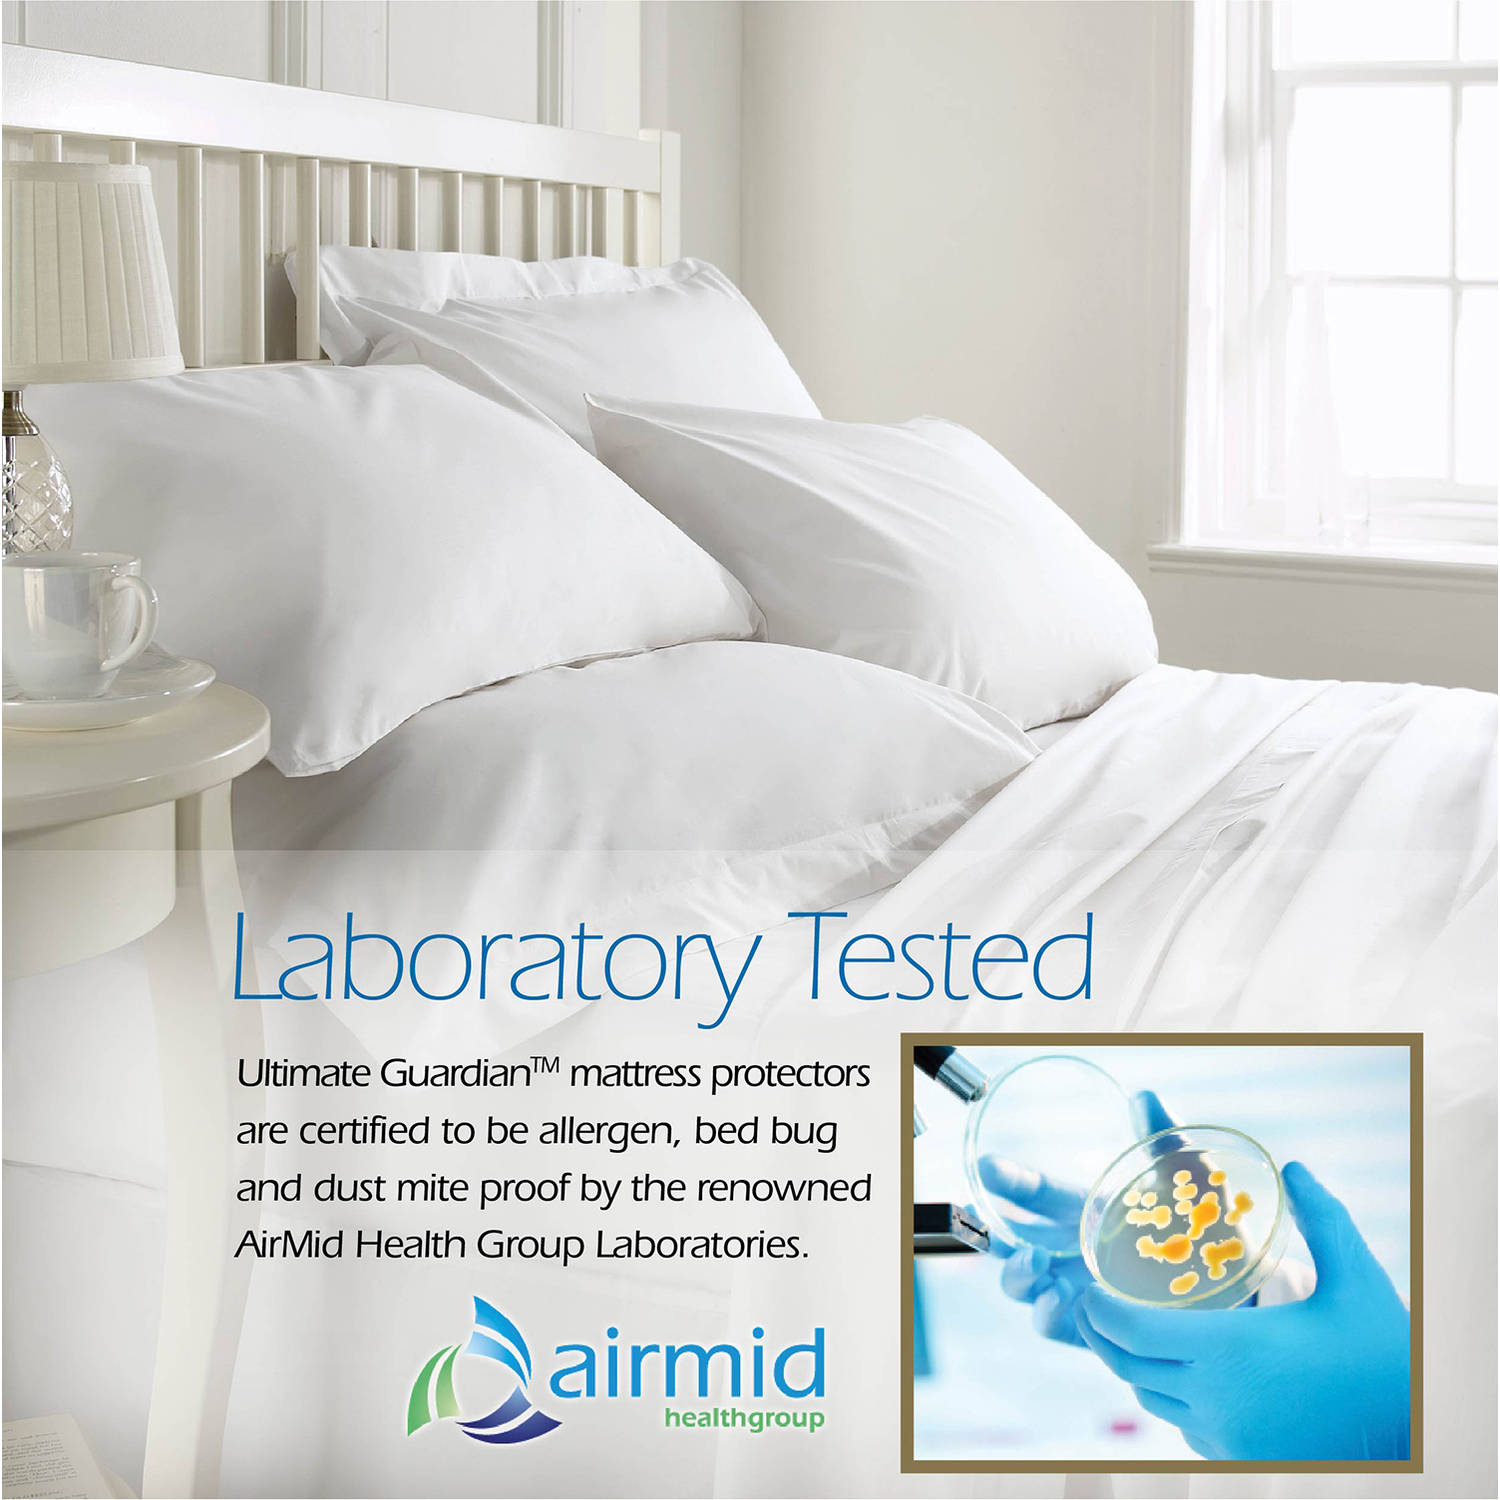 ultimate guardian, lab tested, 100 percent bed bug proof mattress